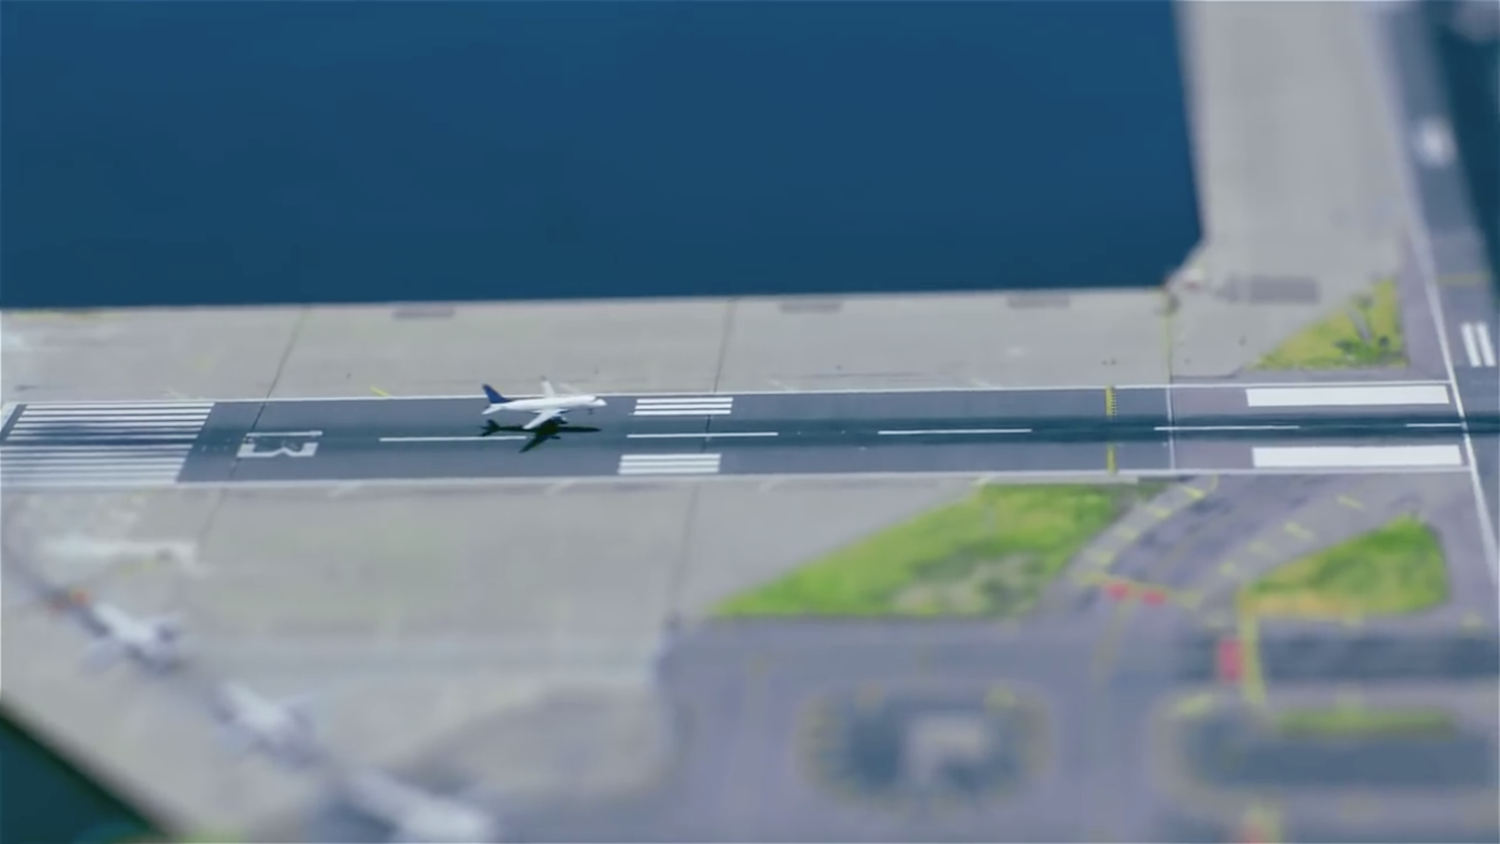 The video then travels to the borough of Queens, where LaGuardia Airport is located. The East River and Rikers Island Channel surround runway 13/31, the longest runway at the airport by just one metre.